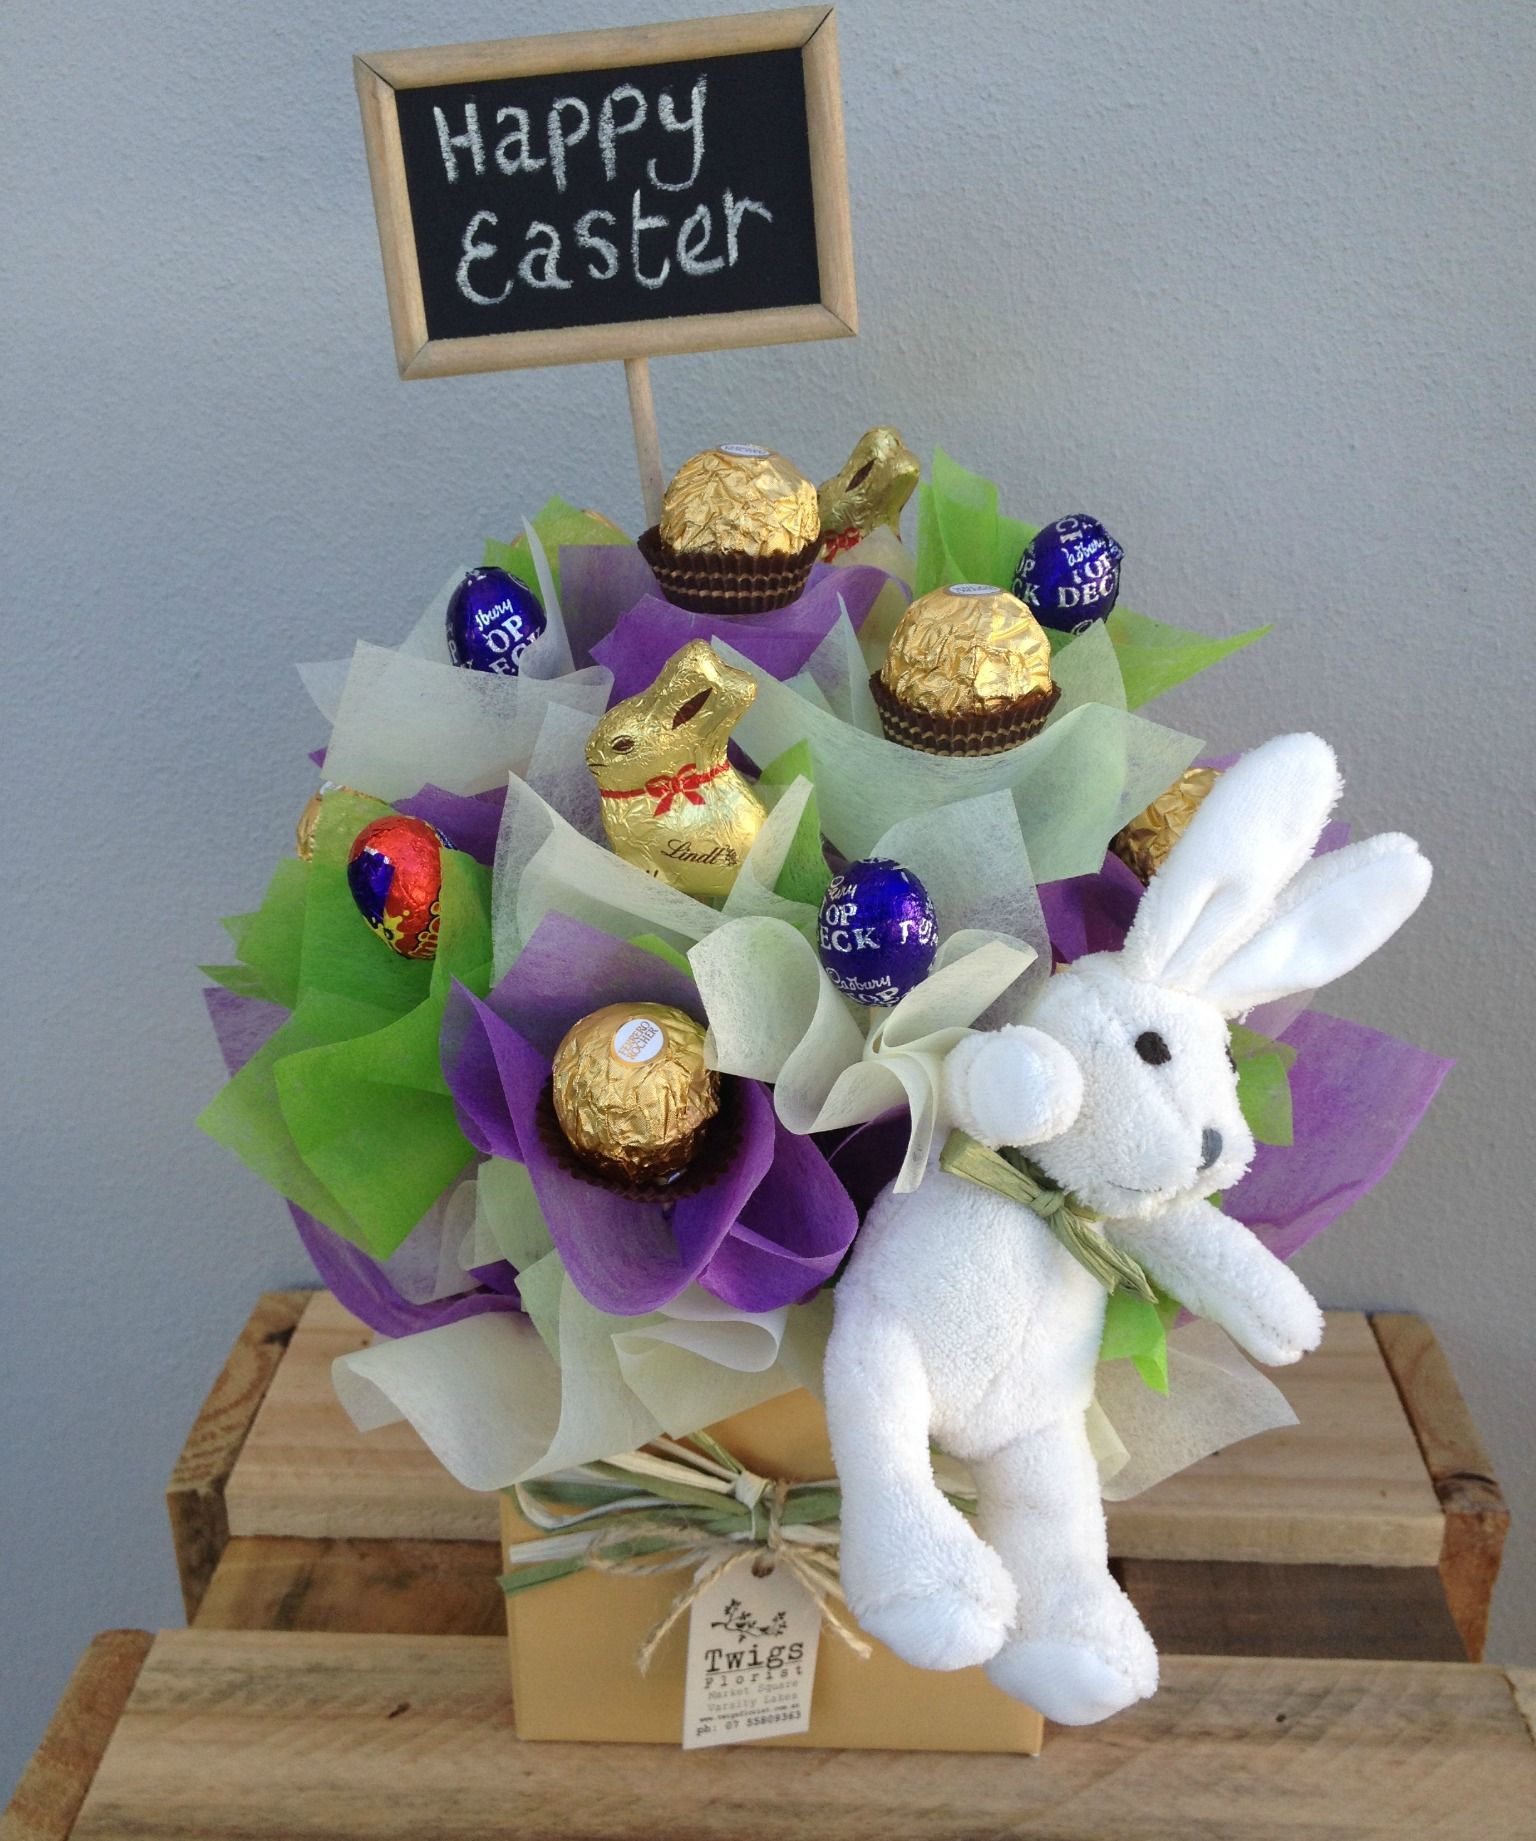 Easter chocolate ferrero rocher chocolates easter pinterest perfect easter gift delivered free to our local gold coast suburbs or available now for pick up from our varsity lakes florist shop negle Images